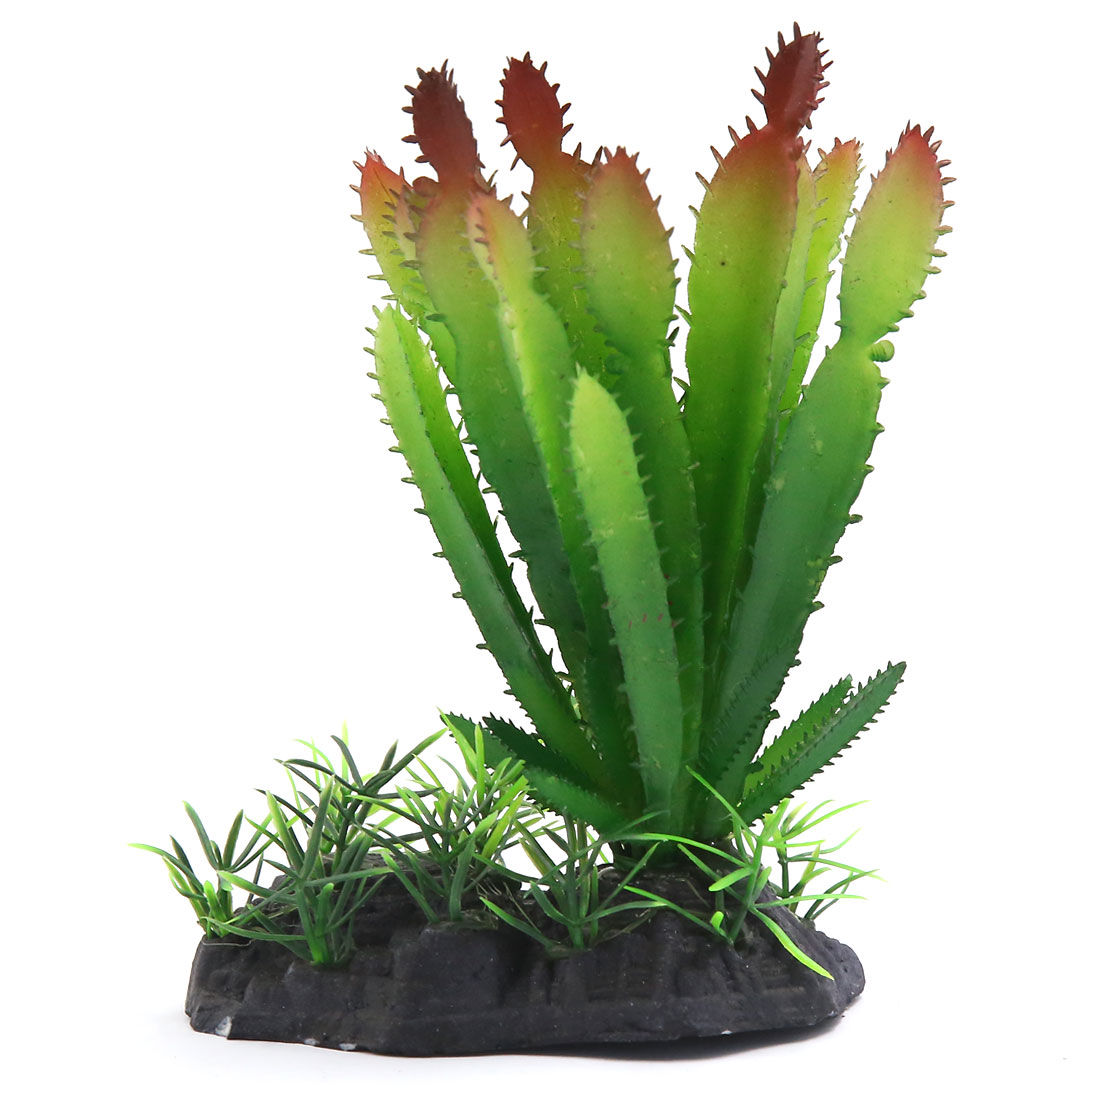 Aqua Landscape Aquarium Decoration Plastic Plant Green Red for Goldfish